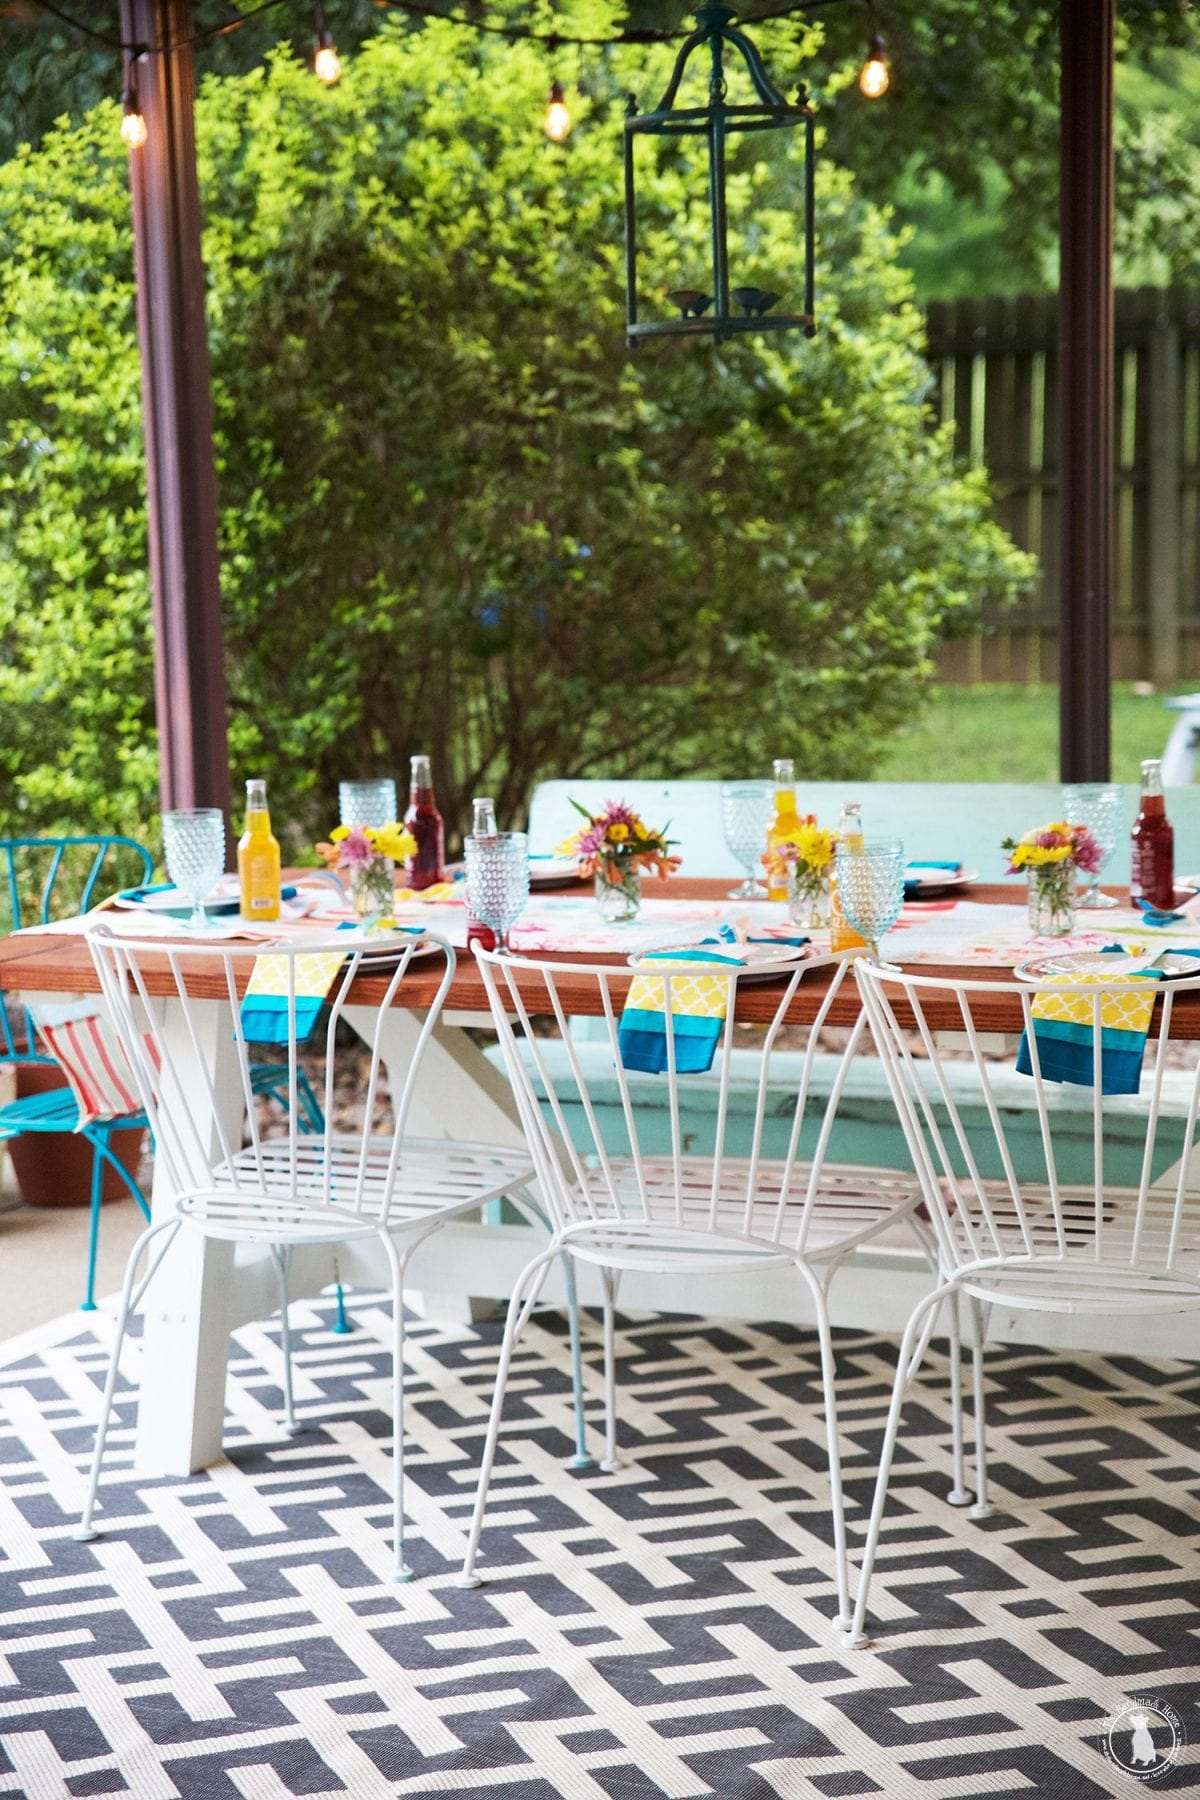 Dining Al Fresco With Waverly Inspirations The Handmade Home